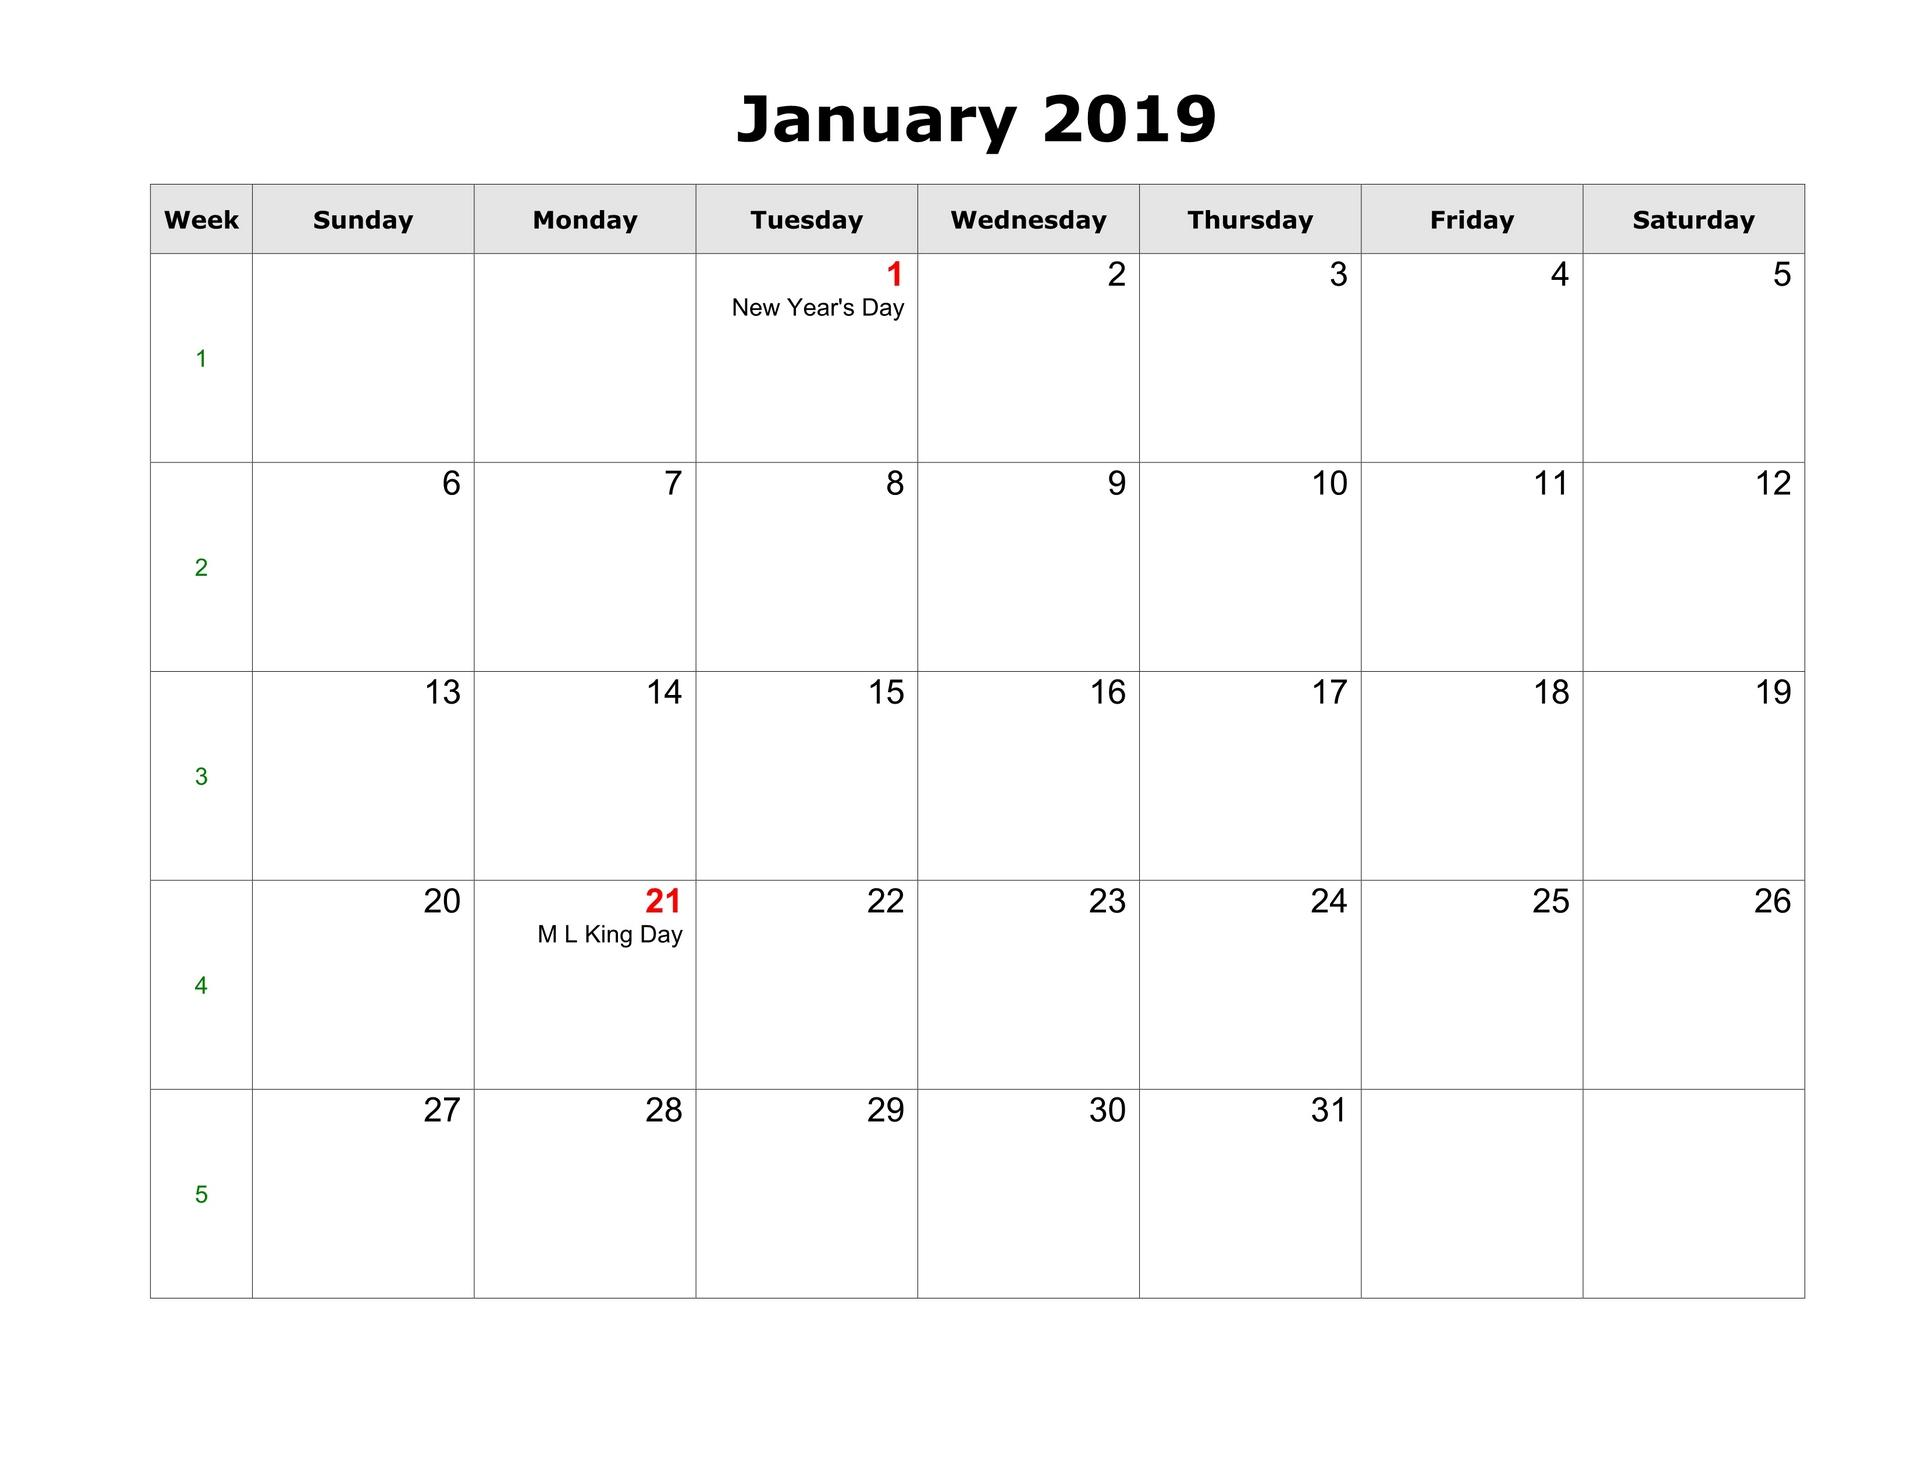 January 2019 Calendar With Holidays Printable Templates